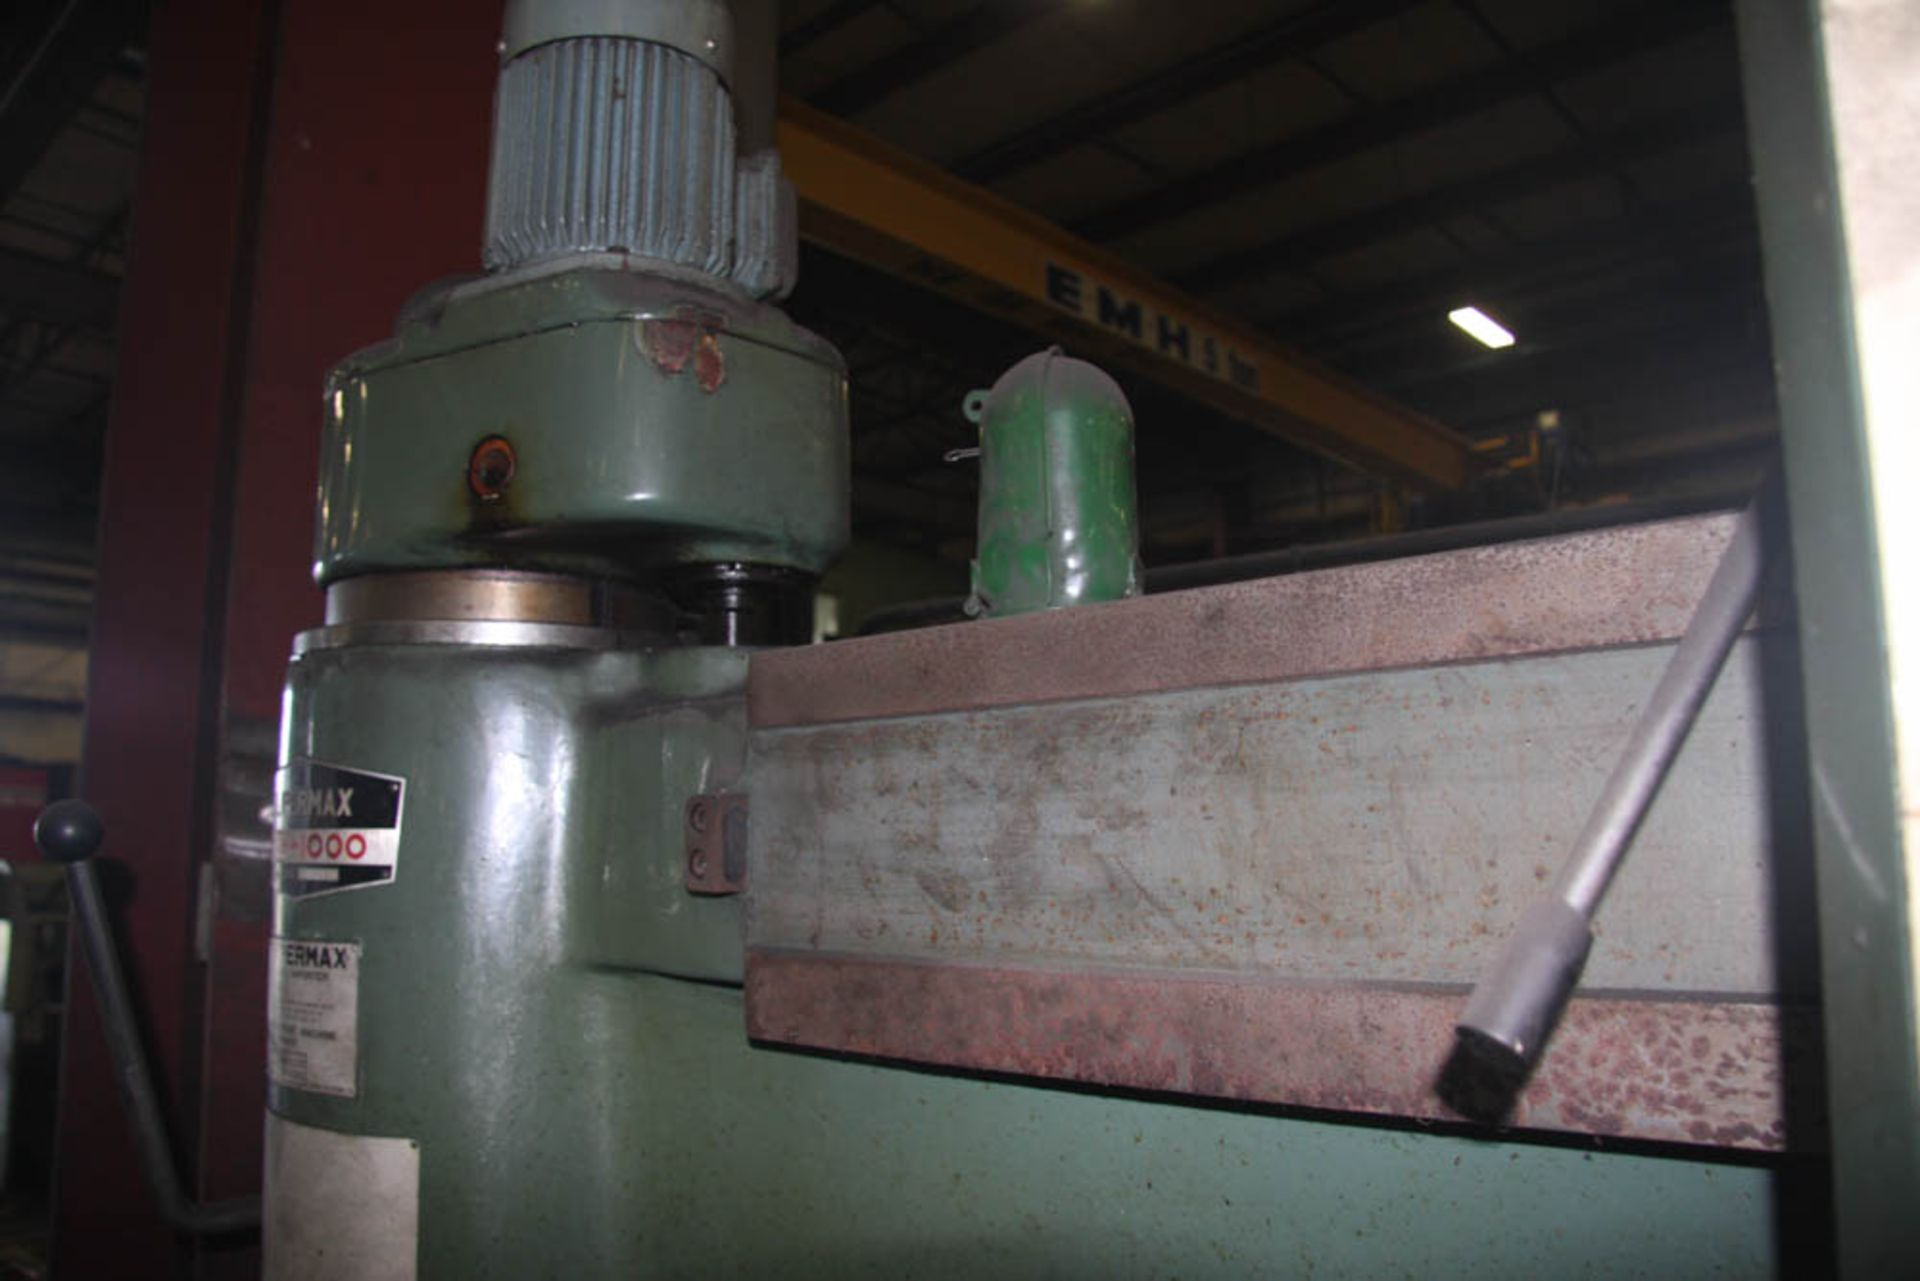 """SUPERMAX MDL. HRD-1000 3' X 9' RADIAL ARM DRILL, POWER ELEVATION, COOLANT, 17"""" X 18"""" X 18"""" T-SLOTTED - Image 6 of 11"""